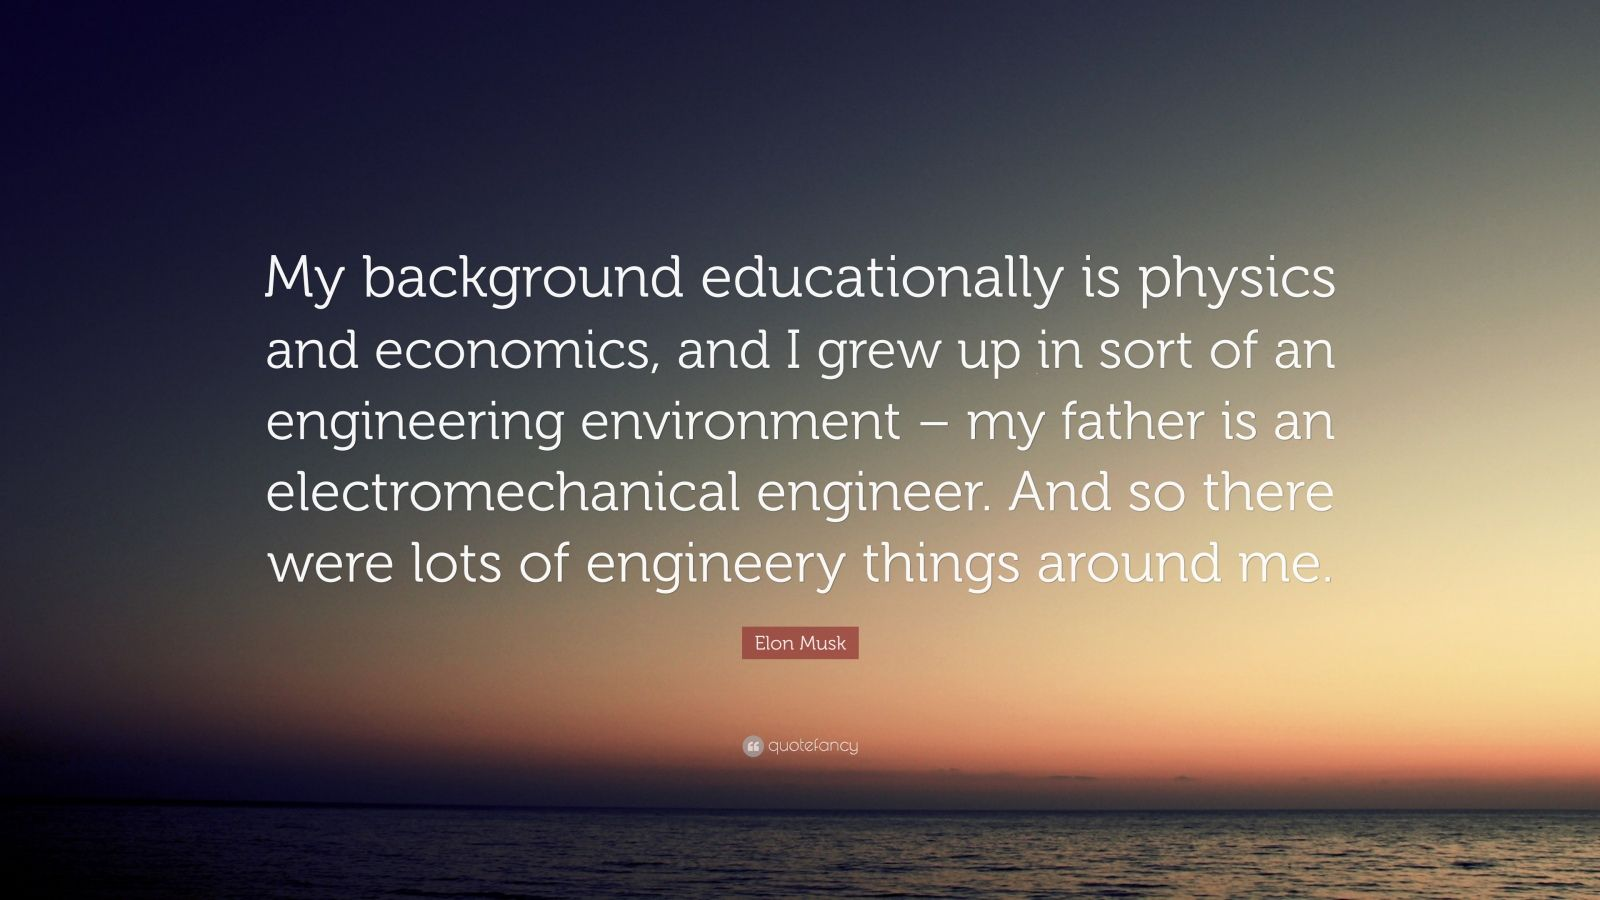 """Elon Musk Quote: """"My background educationally is physics and economics, and I grew up in sort of an engineering environment – my father is an electromechanical engineer. And so there were lots of engineery things around me."""""""